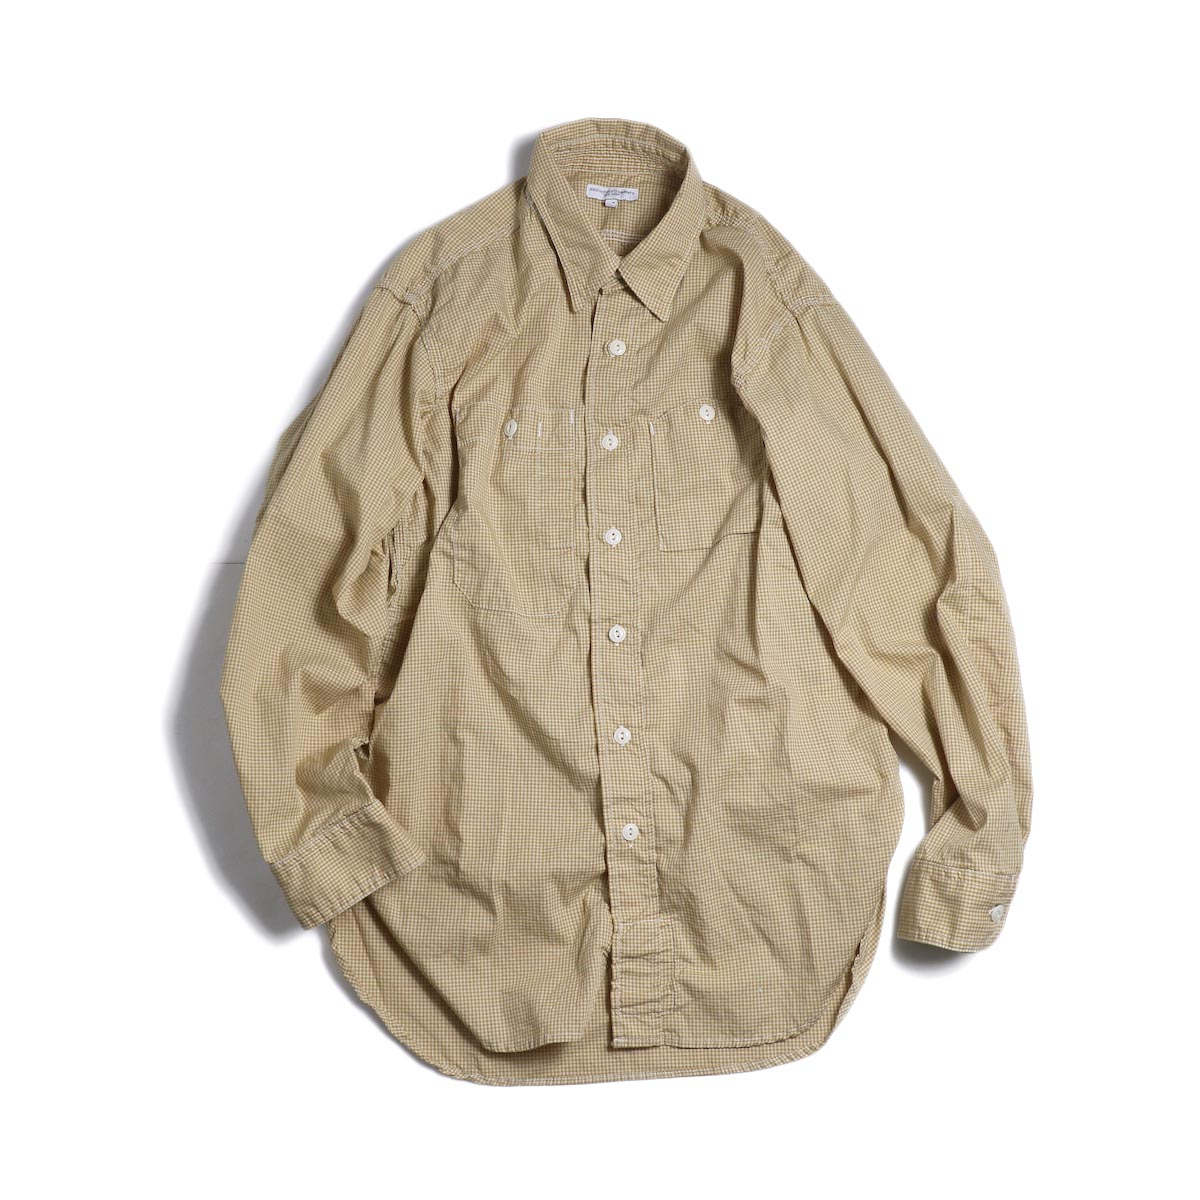 ENGINEERED GARMENTS / Work Shirt -Small Gingham Broadcloth (Gold)